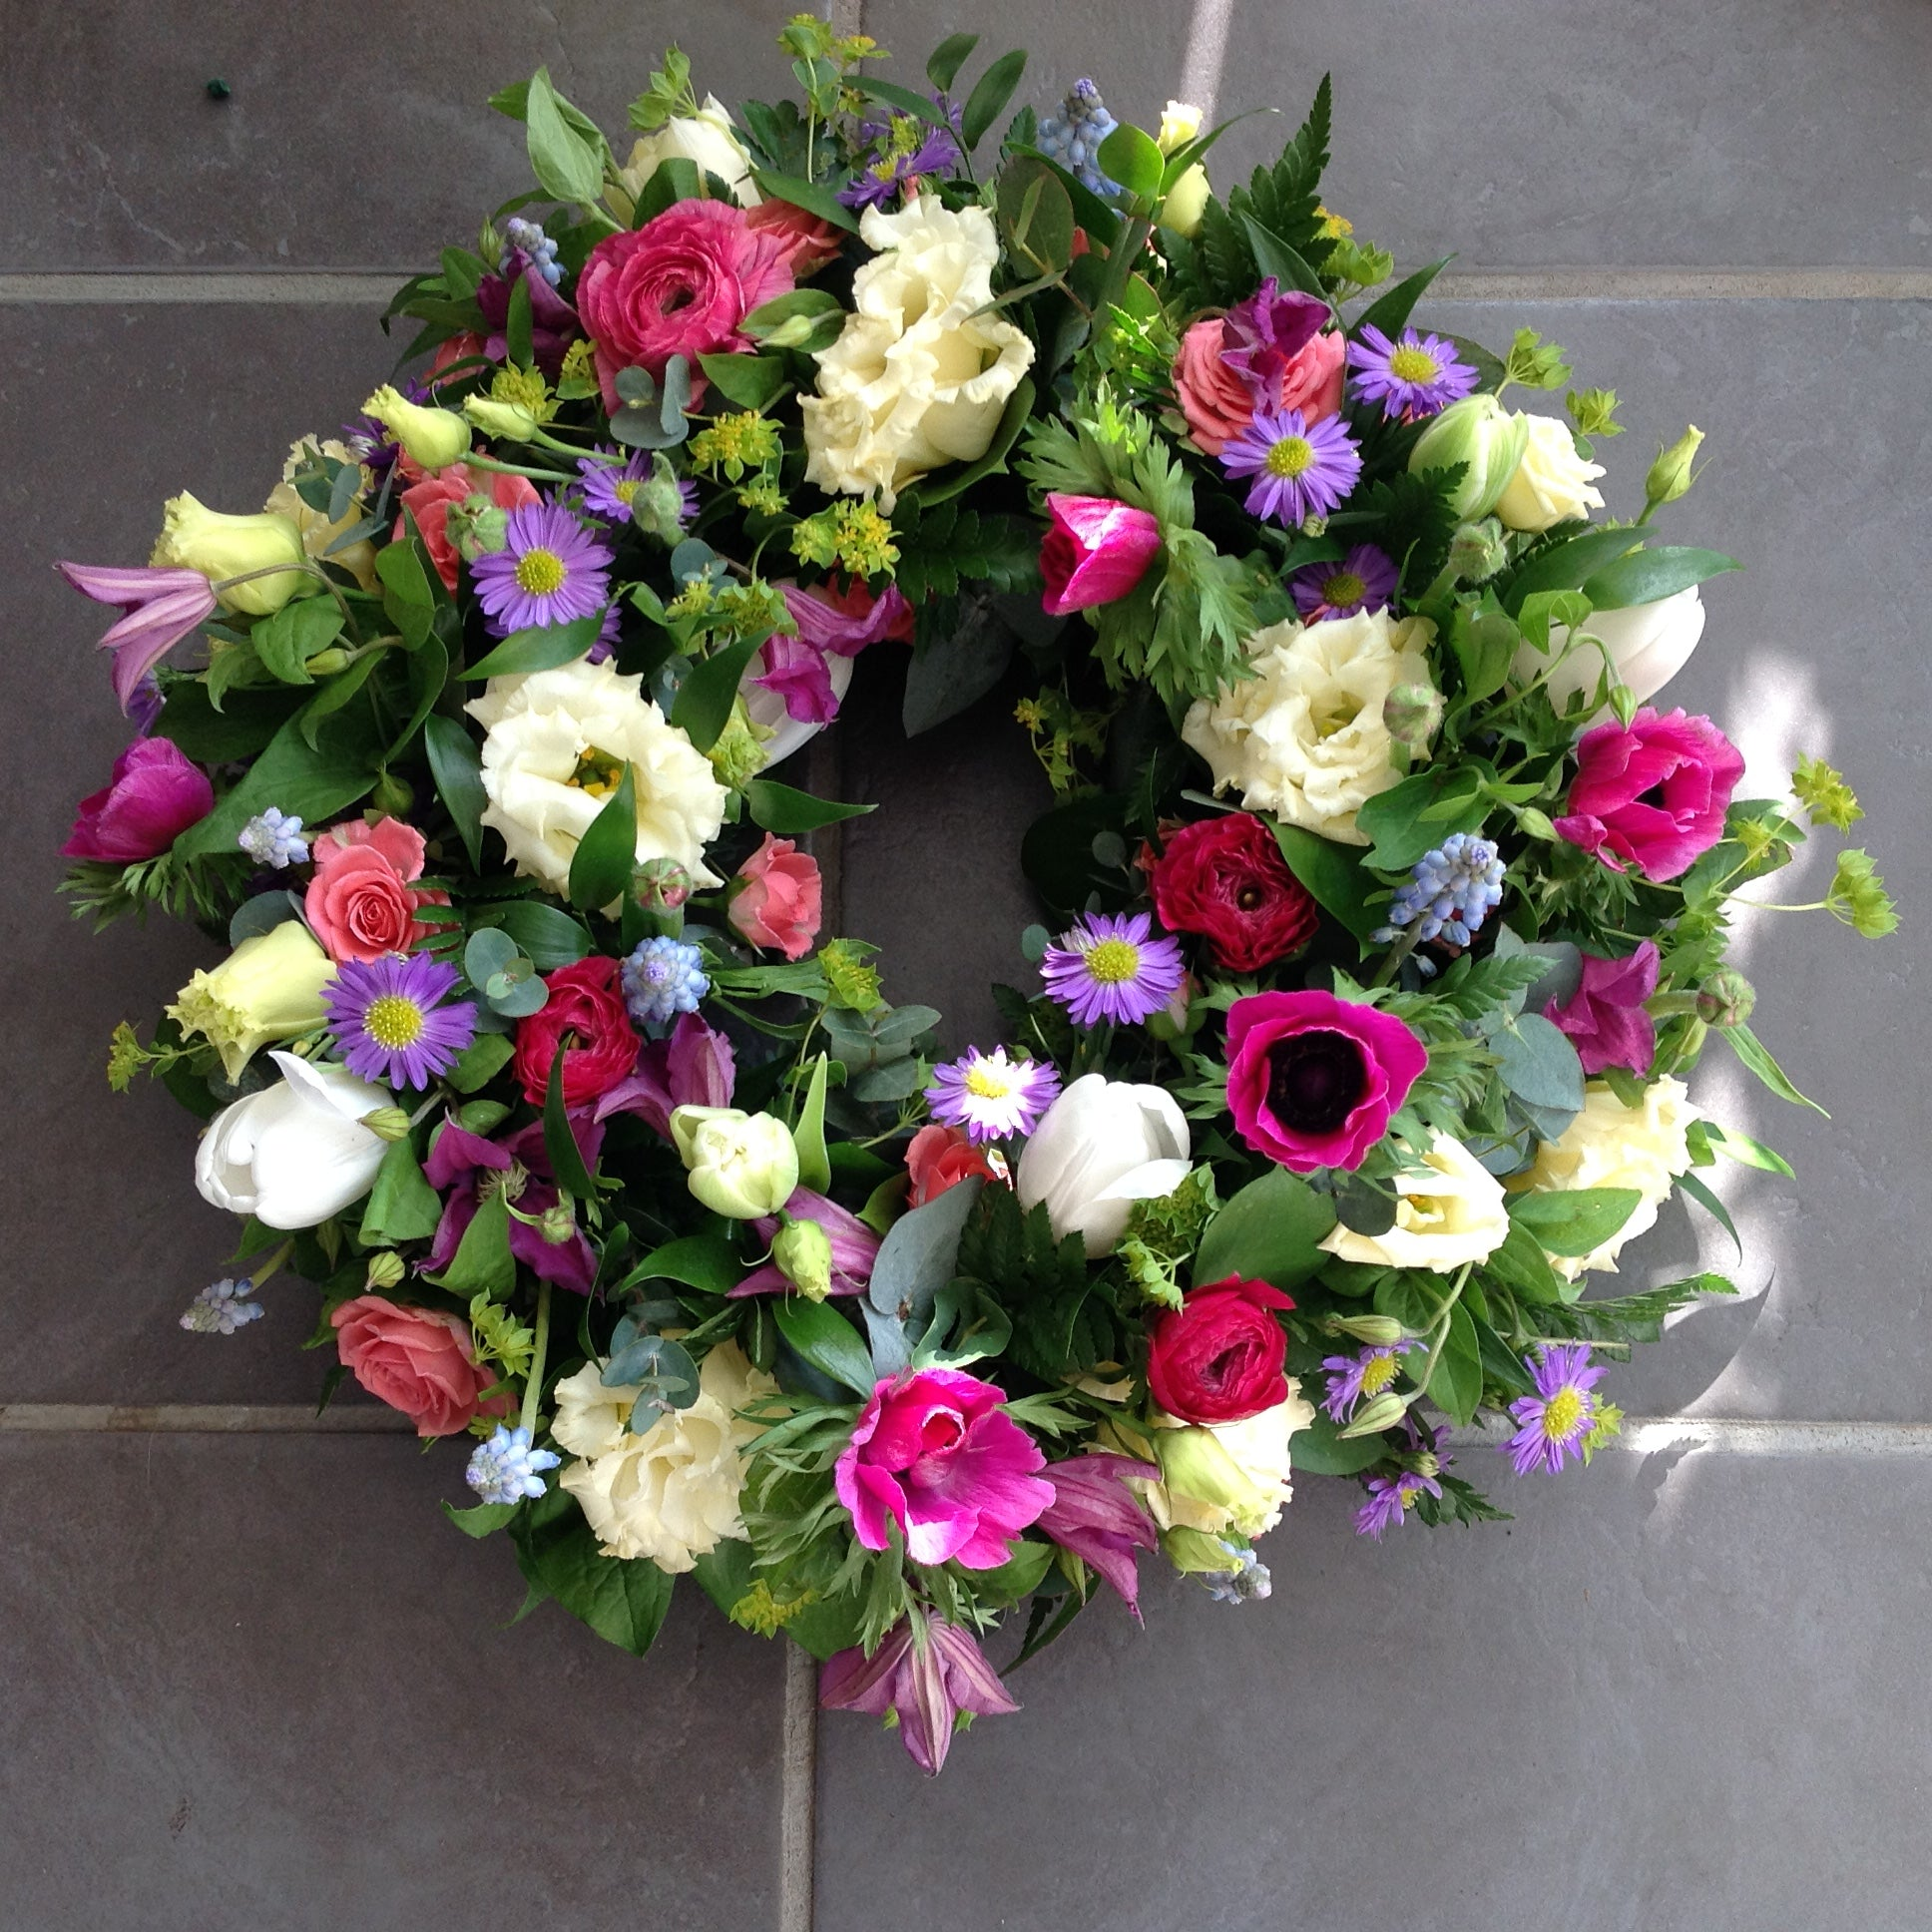 Leave it to us Wreath